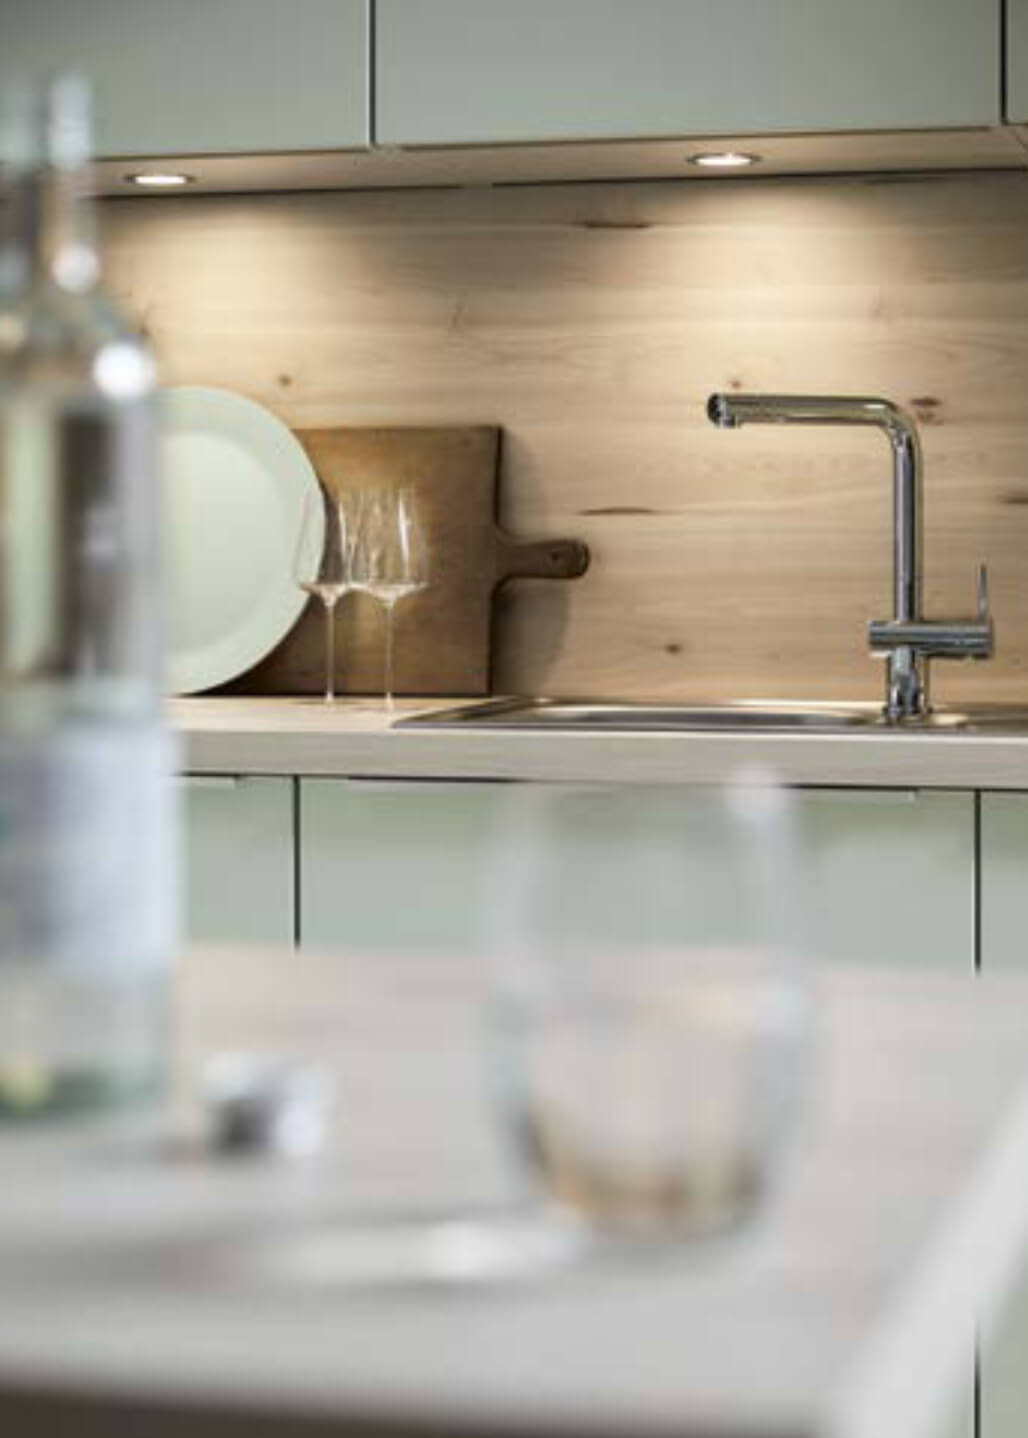 Sink and splashback details